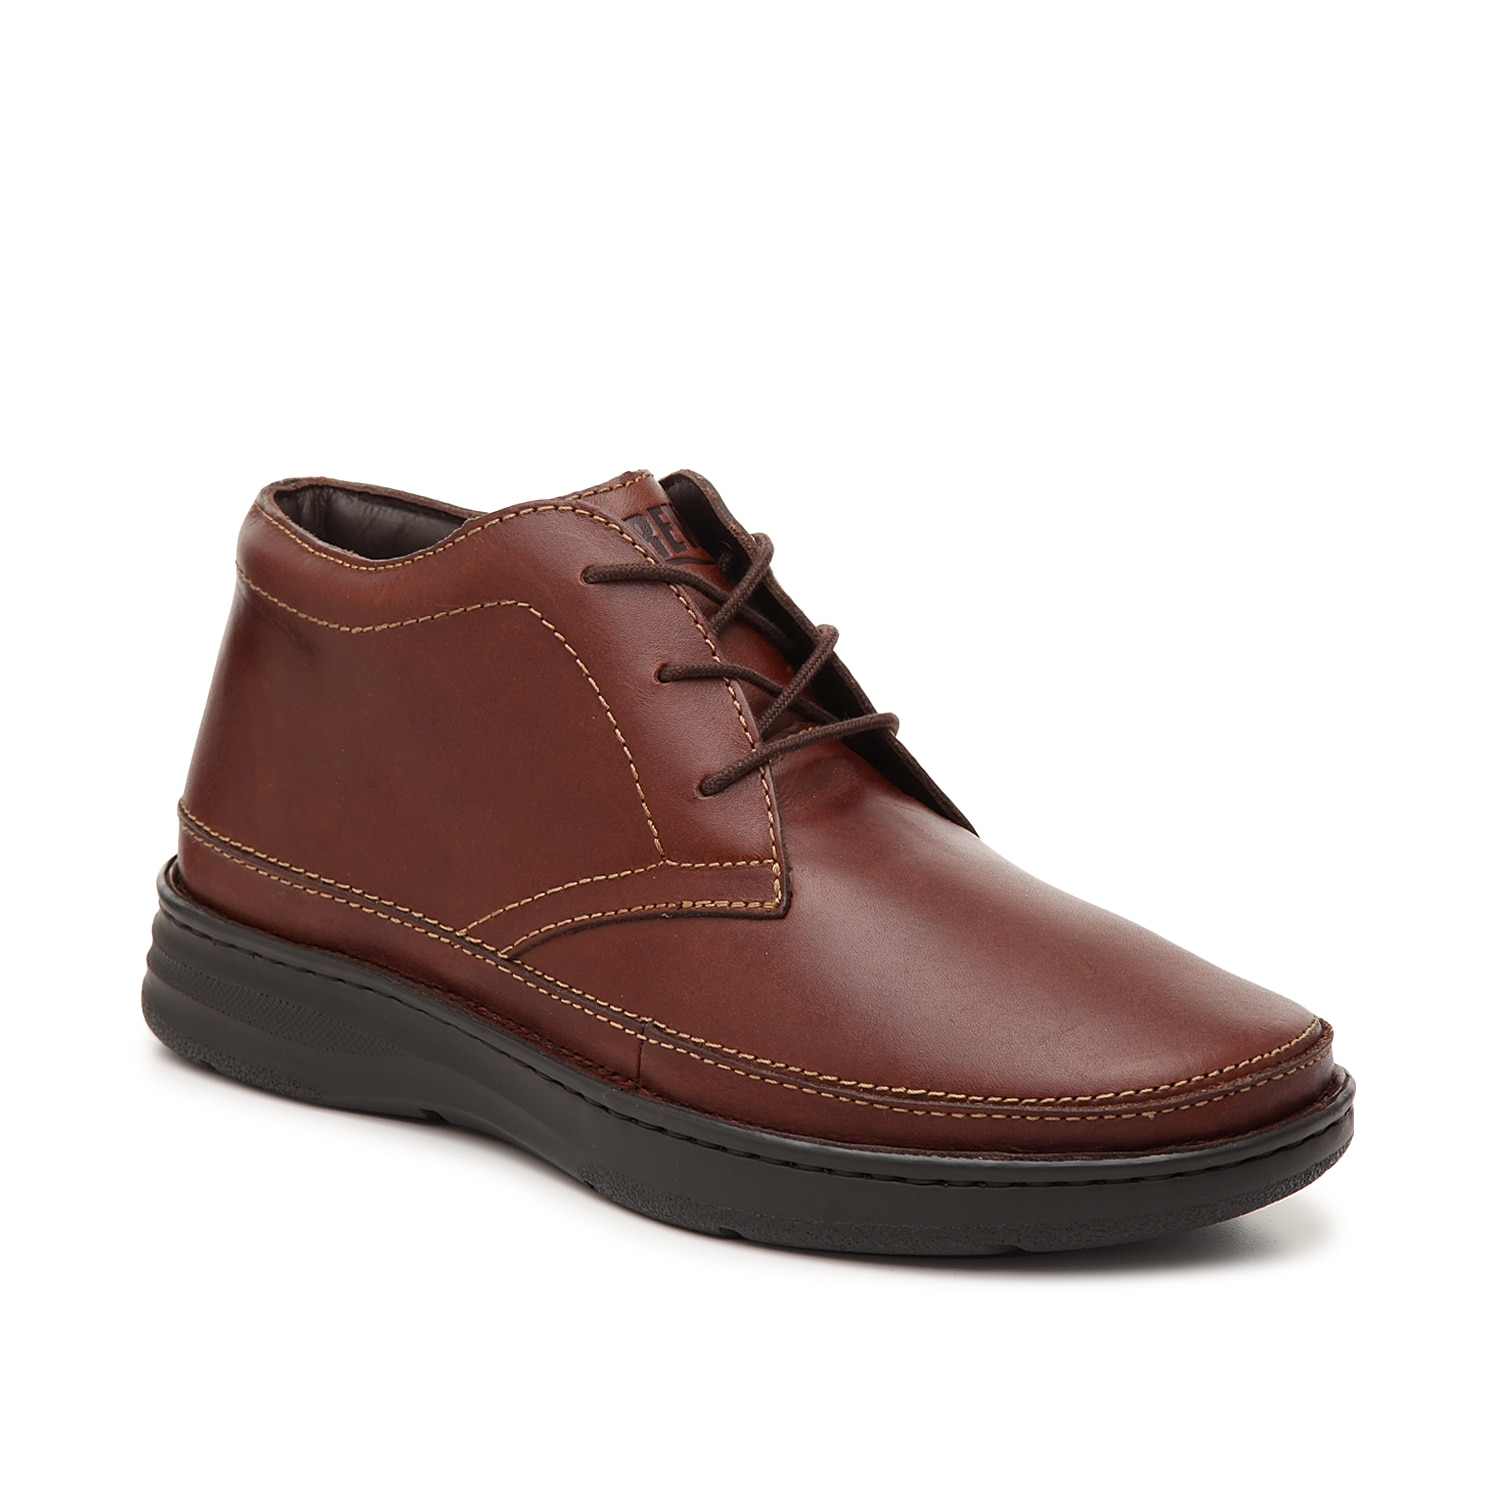 Stay stylish without sacrificing comfort with the Keith chukka boot from Drew. This ankle boot features a Gel System footbed and sole to absorb impact!